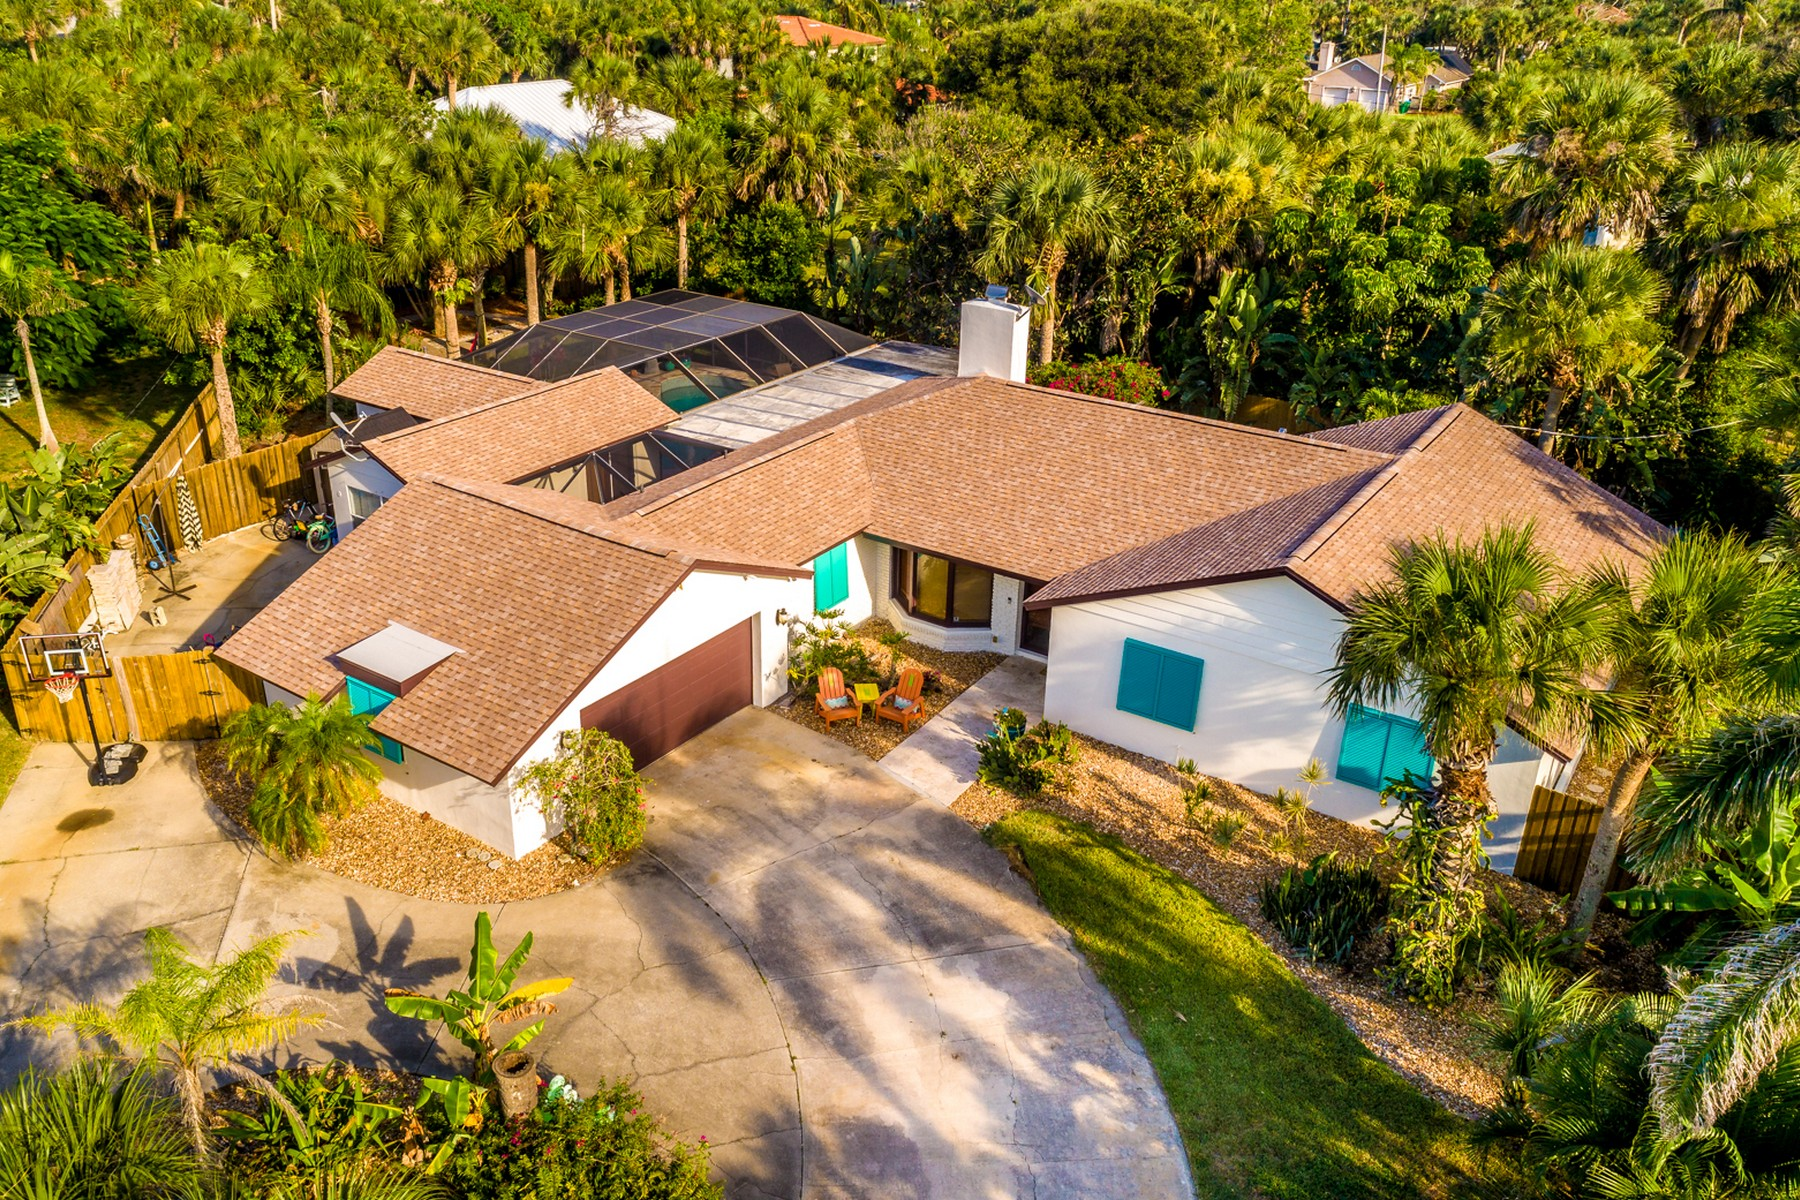 Single Family Home for Sale at Steps Away From the Atlantic Ocean 401 Andrews Drive Melbourne Beach, Florida 32951 United States